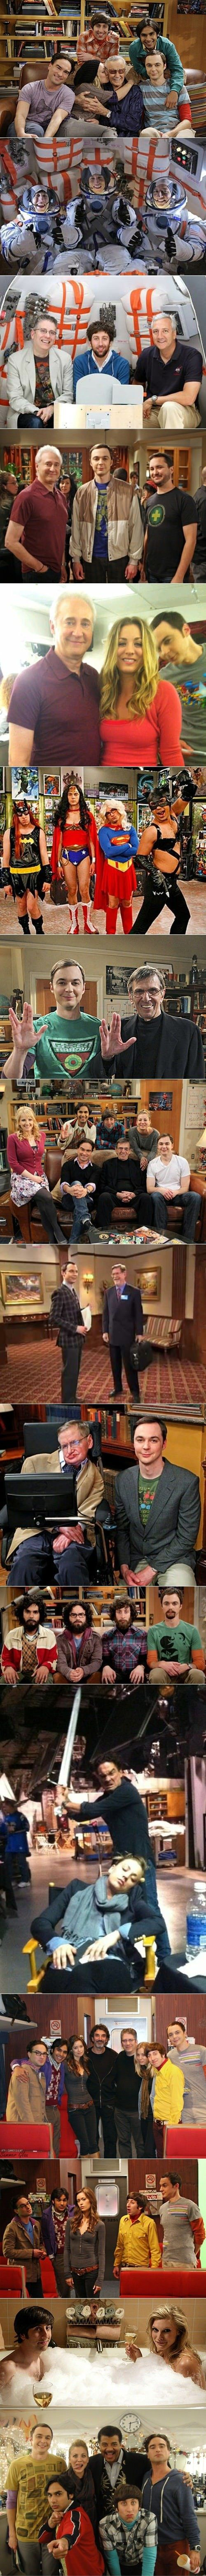 The Big Bang Theory and their geek royalty guest stars